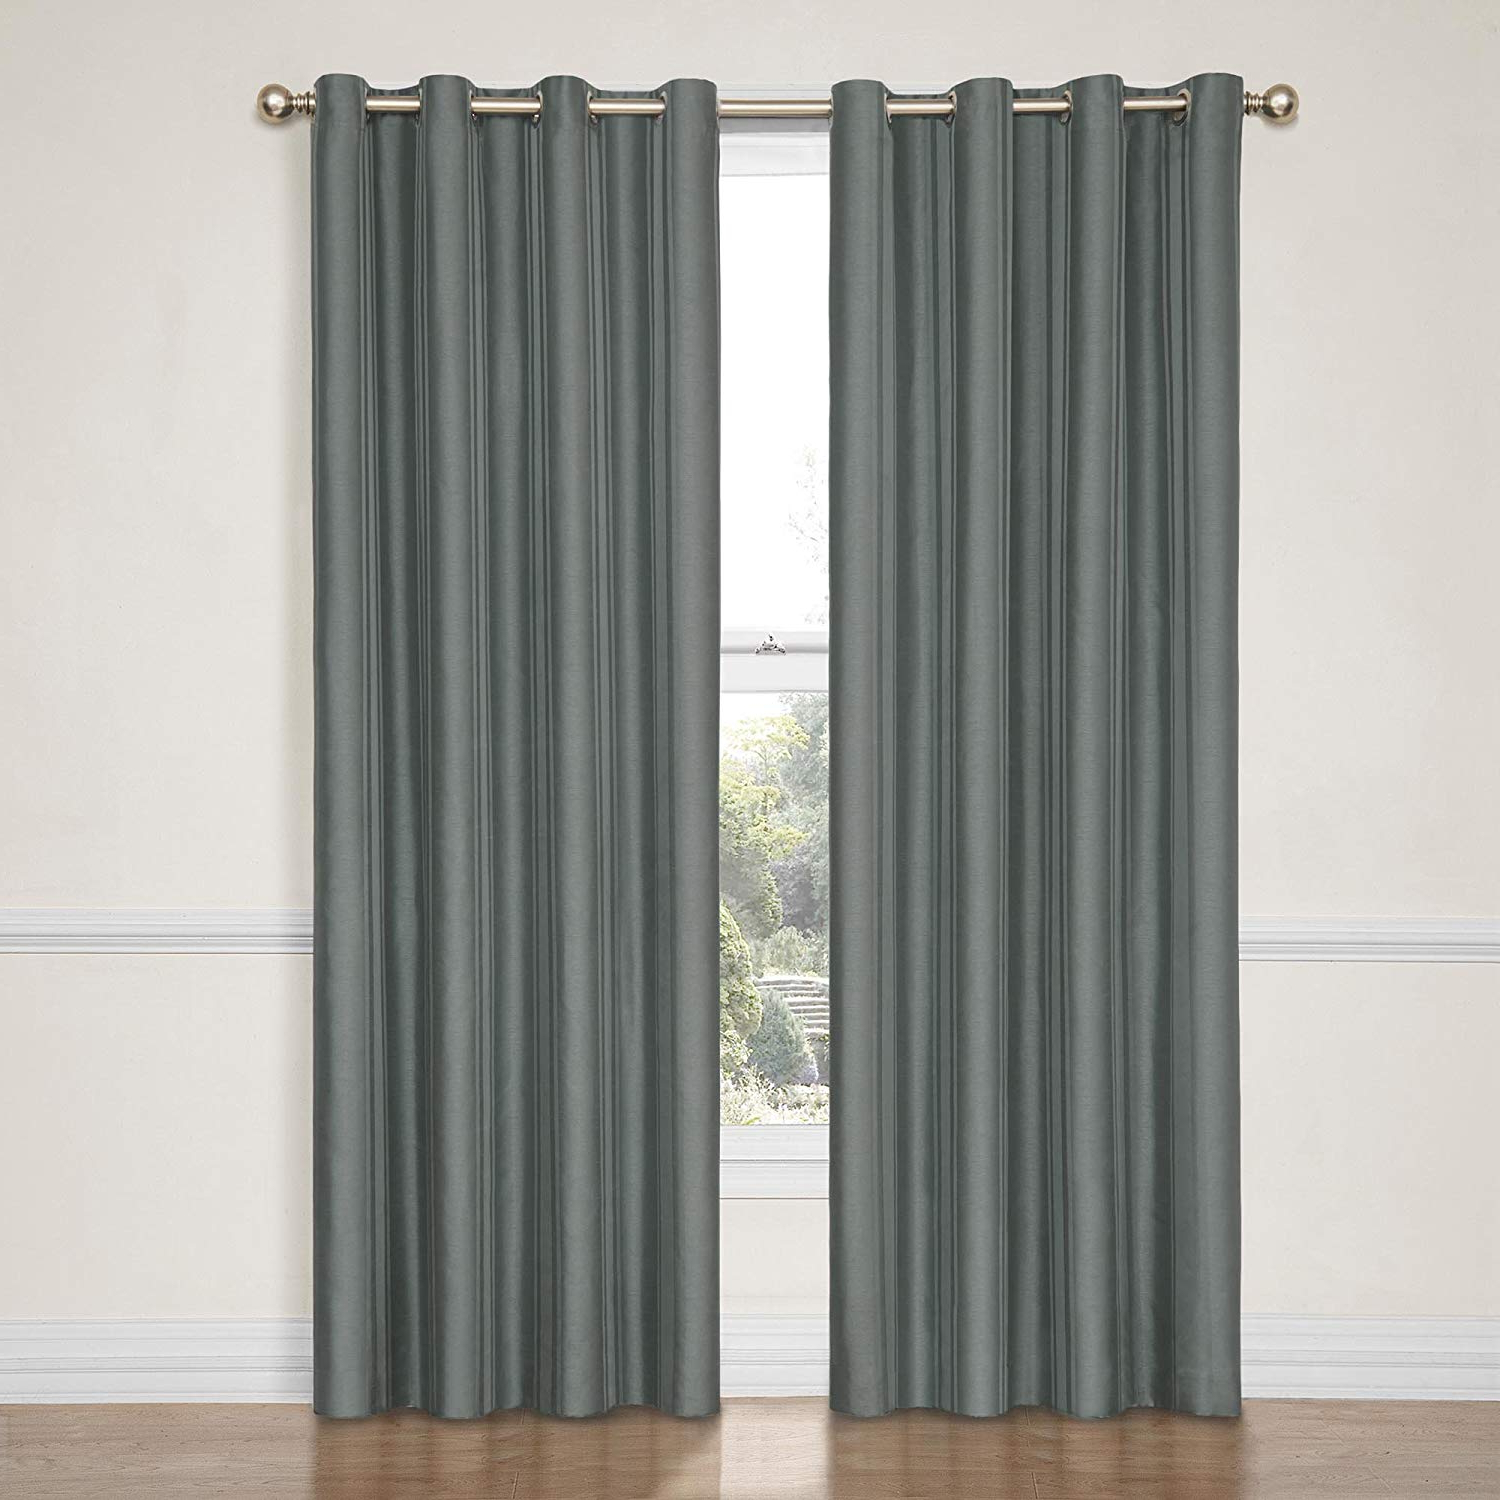 Eclipse Hayden Solid Blackout Window Curtain Panel, 4284 Inch, Blue Throughout Well Liked Hayden Rod Pocket Blackout Panels (View 5 of 20)